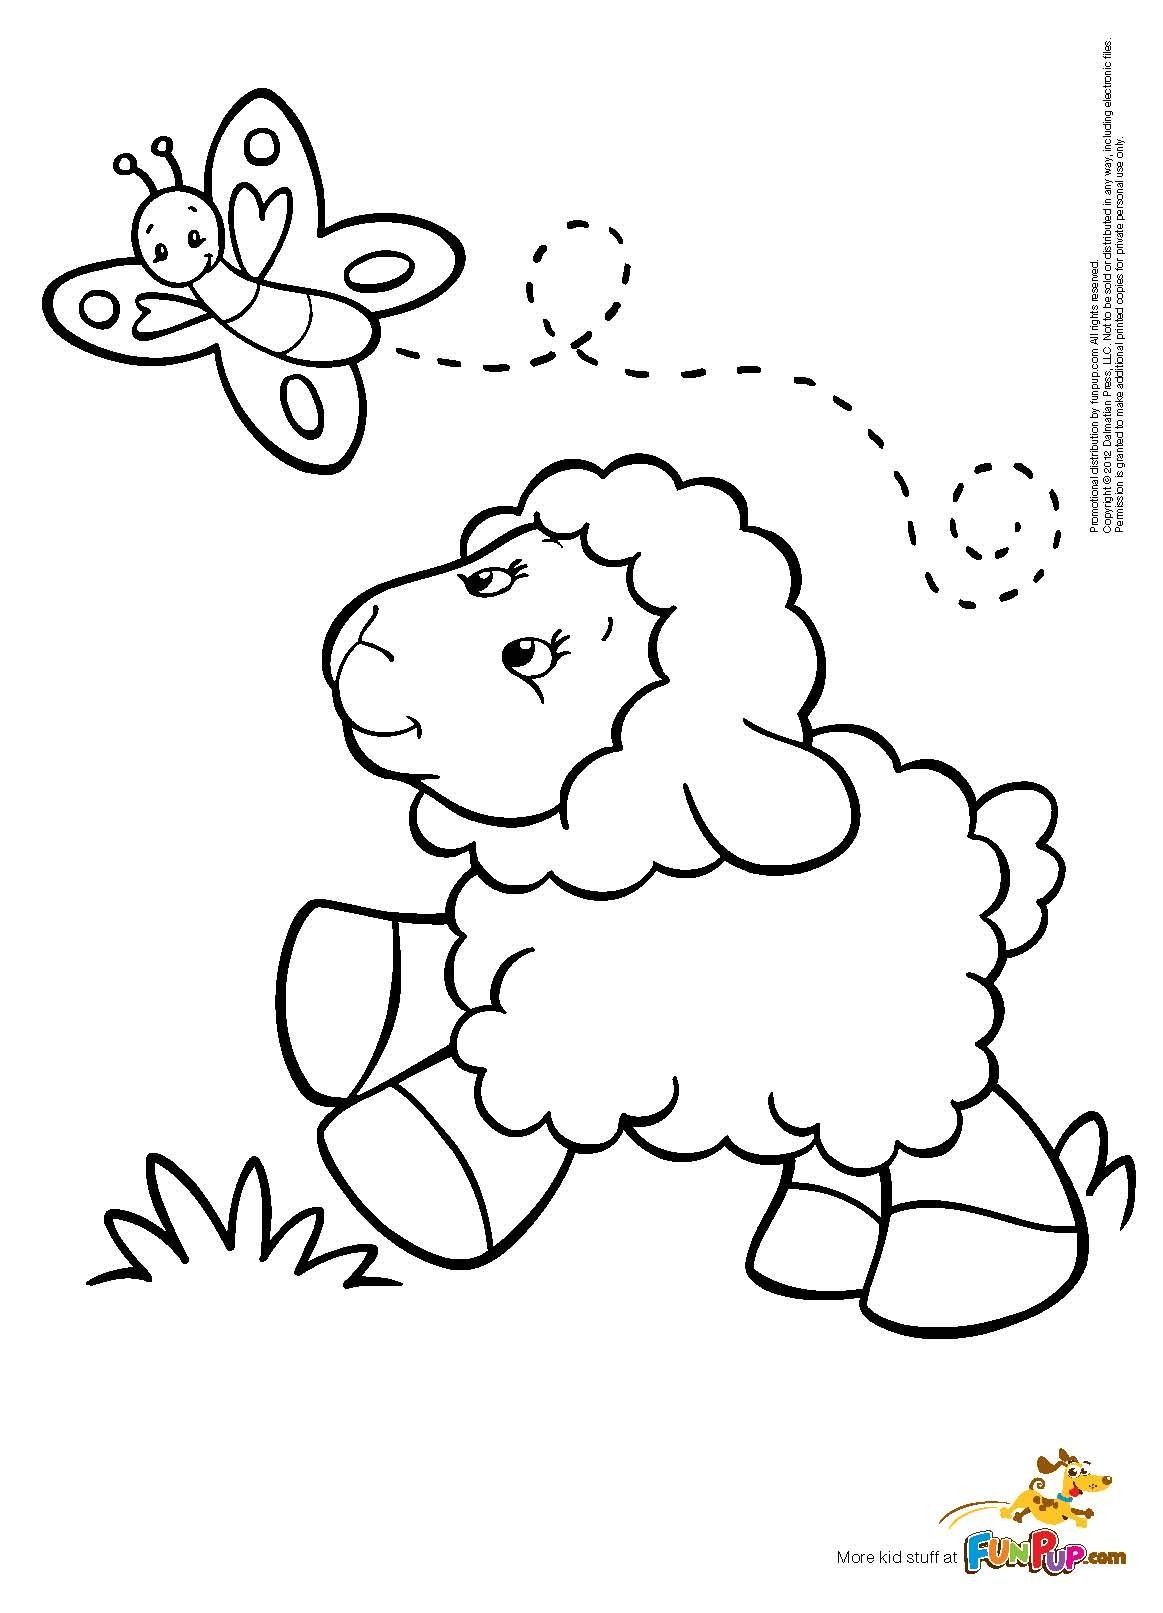 Butterfly Sheep Coloring Page | Nanny\'s quilts | Pinterest ...